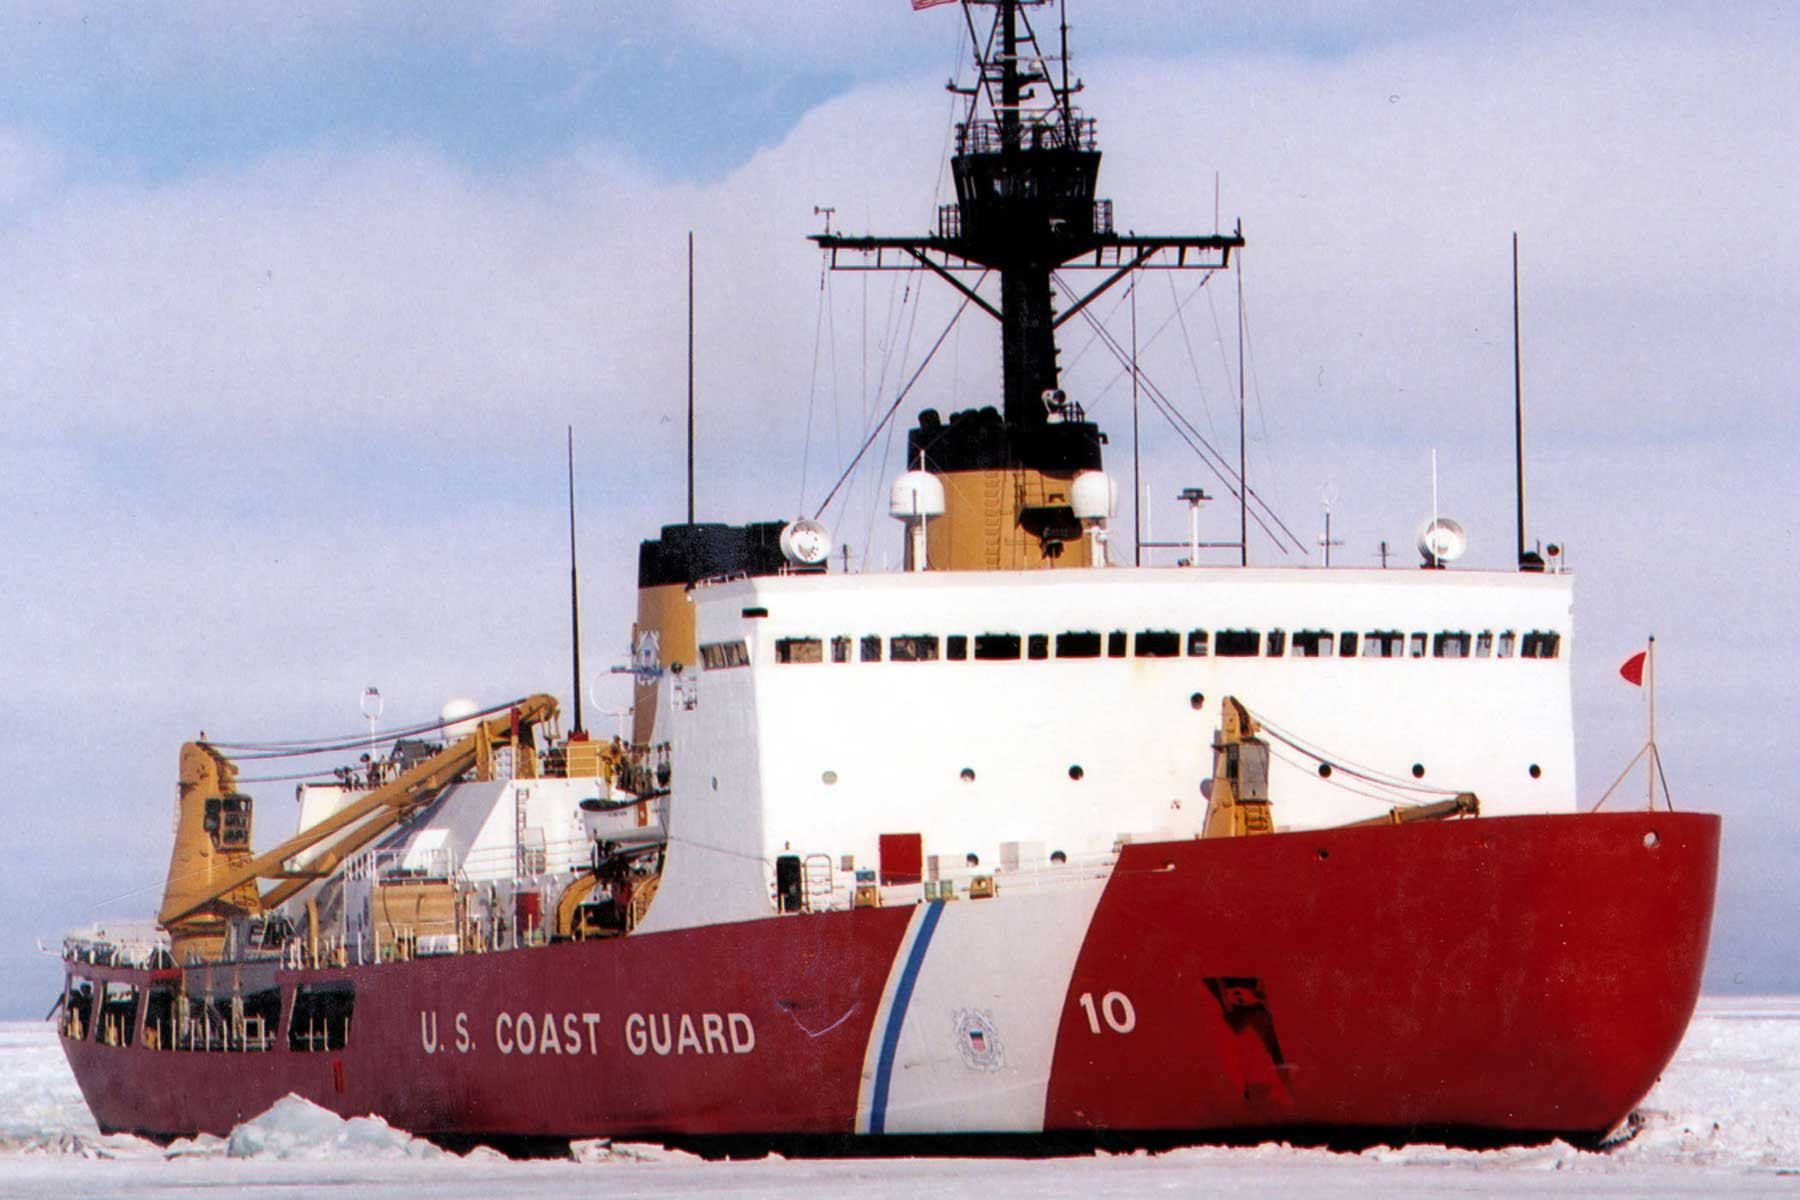 For the First Time in 26 Years, a US Polar Icebreaker Is Headed to the Arctic